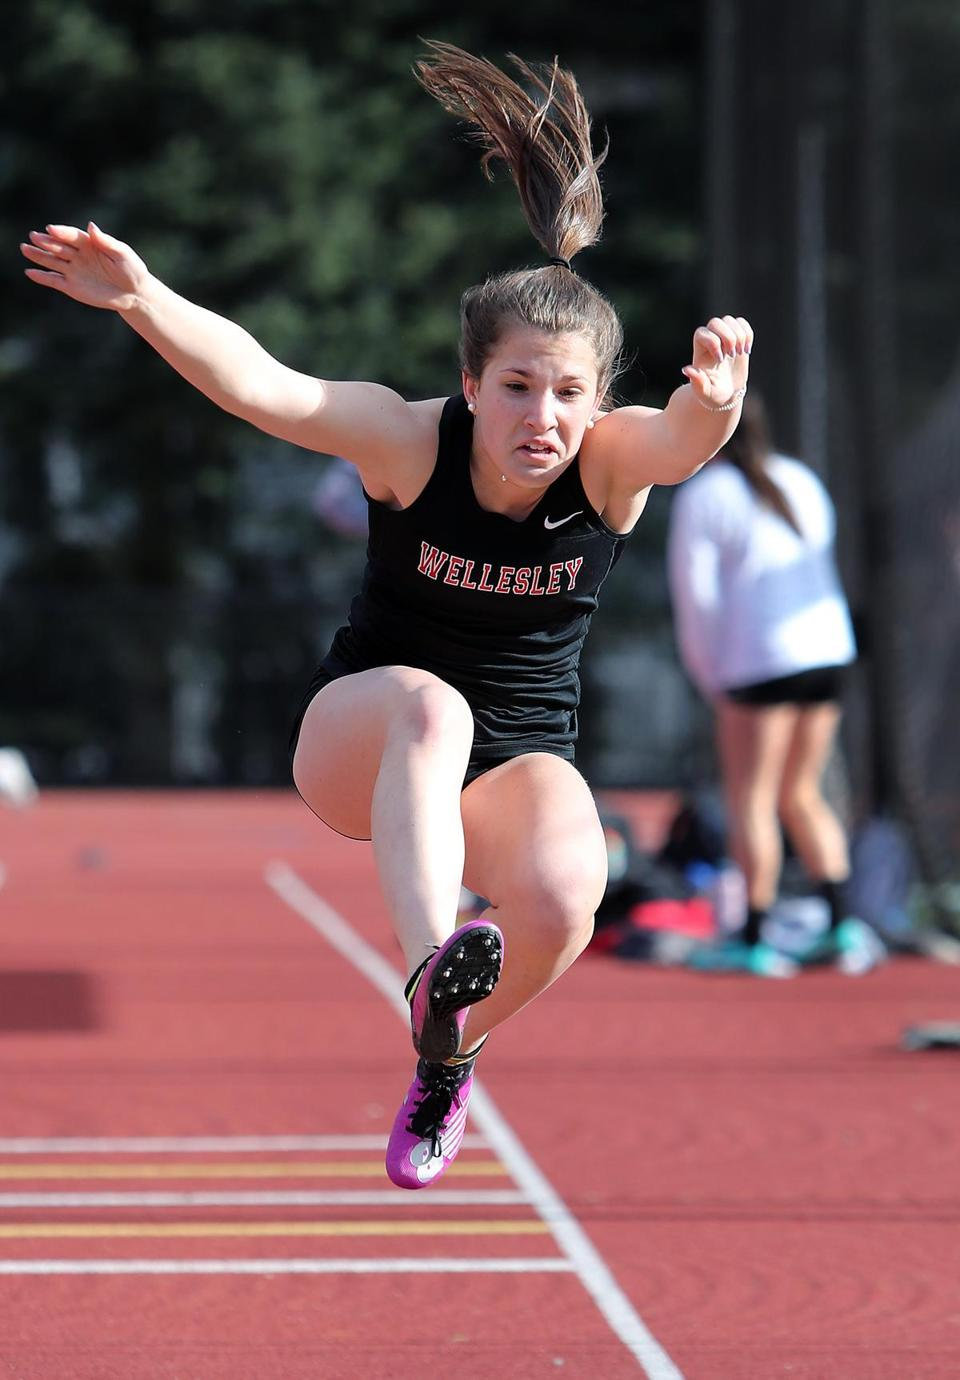 Wellesley's Charlotte Freniere competing in the long jump.